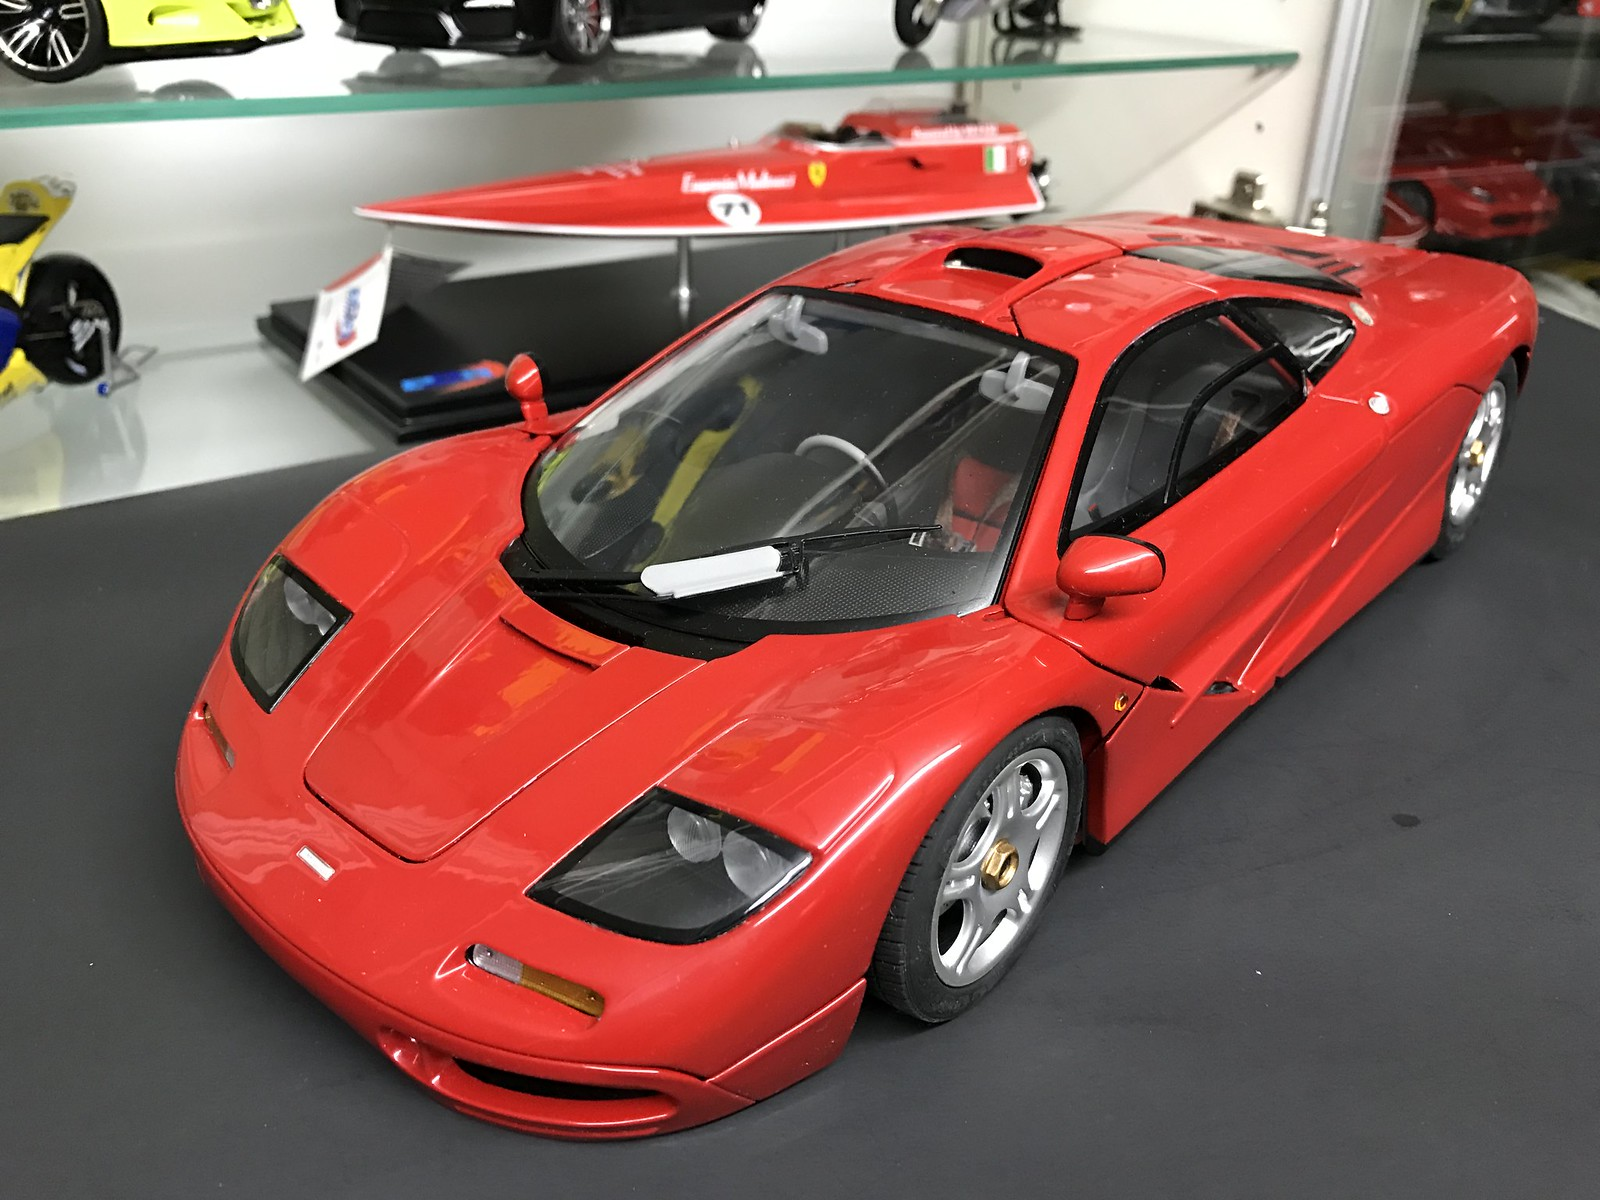 mclaren f1 red. mclaren f1 were a limited run of only 400 pieces in each colour all released the mid 1990u0027s then 2nd 2010 with few mclaren red